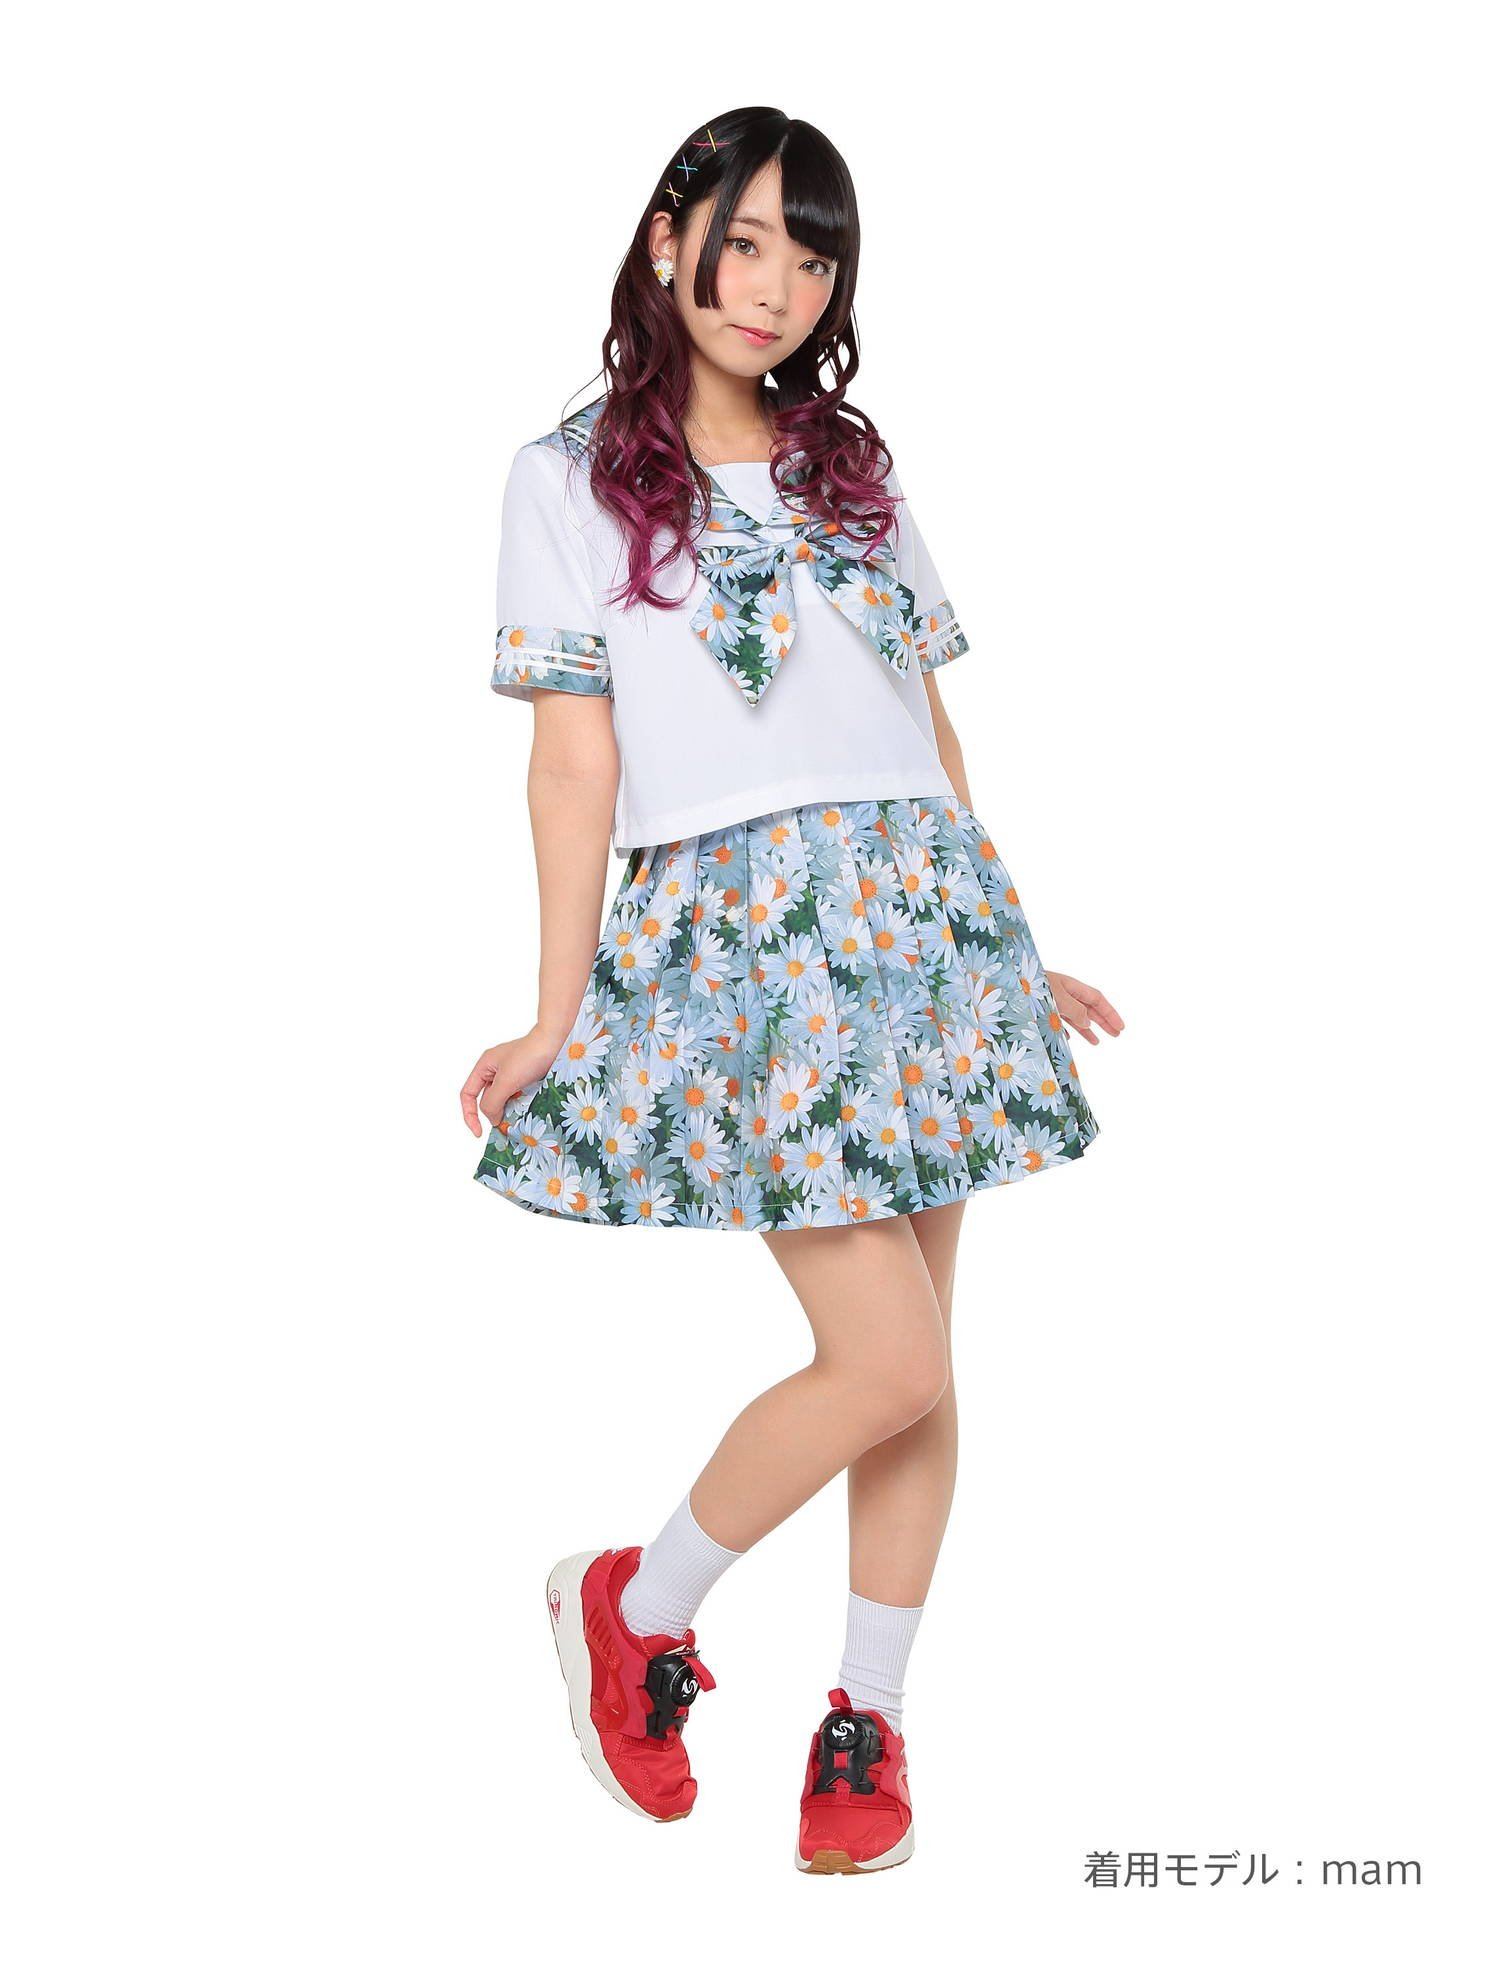 Neon graphics sailor outfit Dear marguerite costume ladies 155 cm-165 cm by Stone